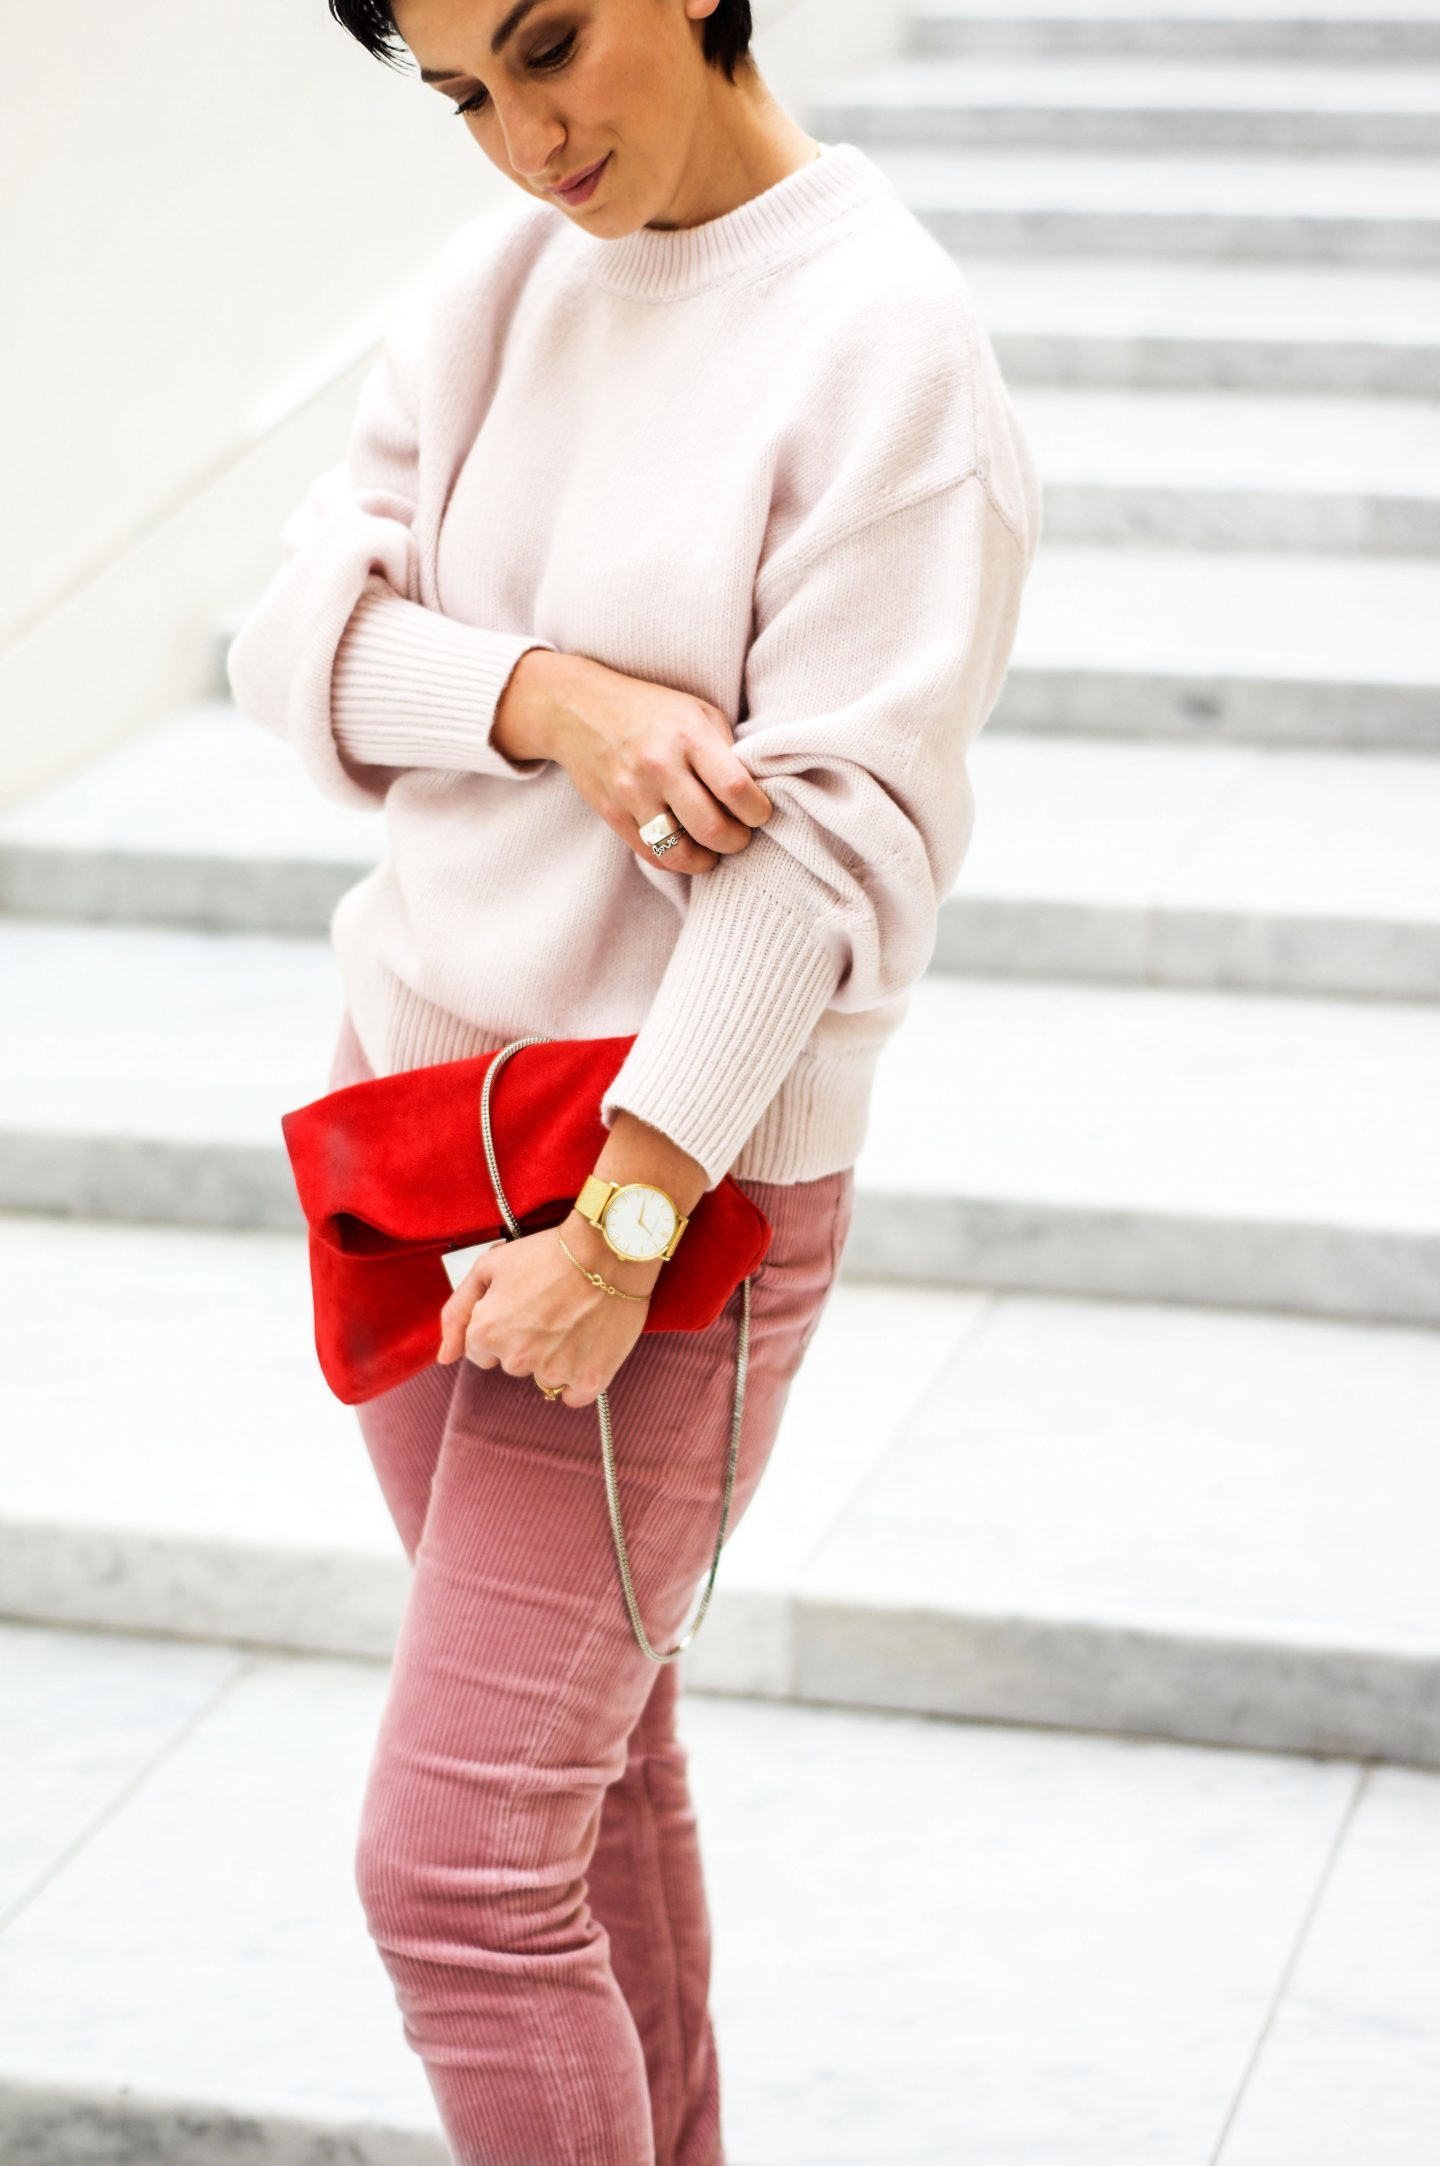 Corduroy trousers and sweater outfit pink and red combination copy